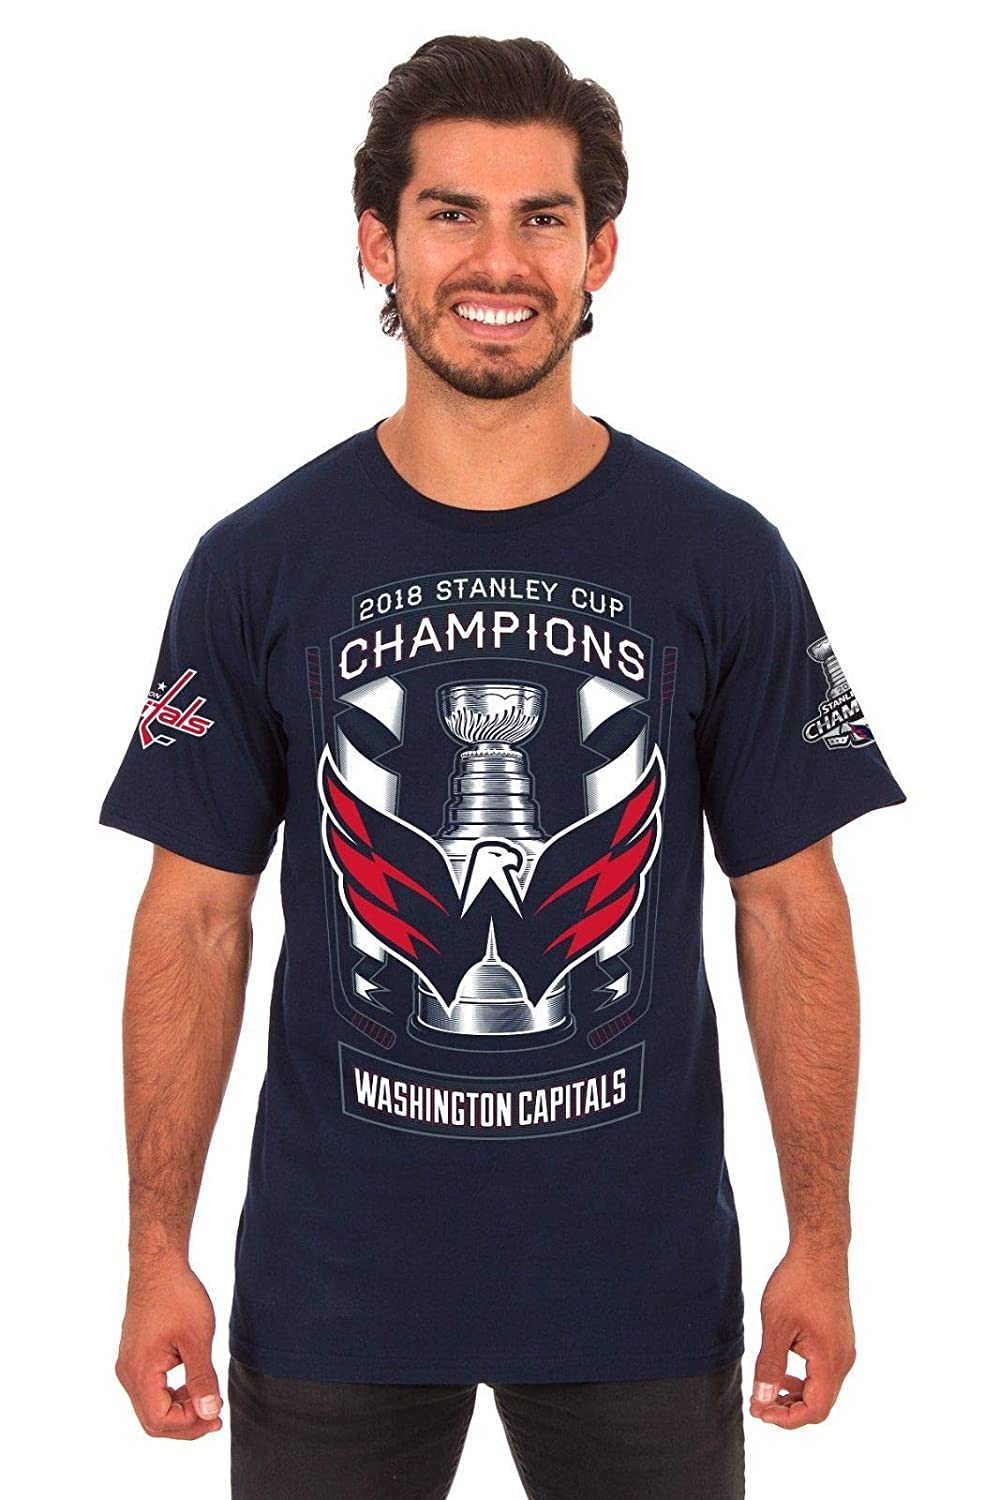 [Size X-Large] NHL Washington Capitals Shirt, 2018 Stanley Cup Champions